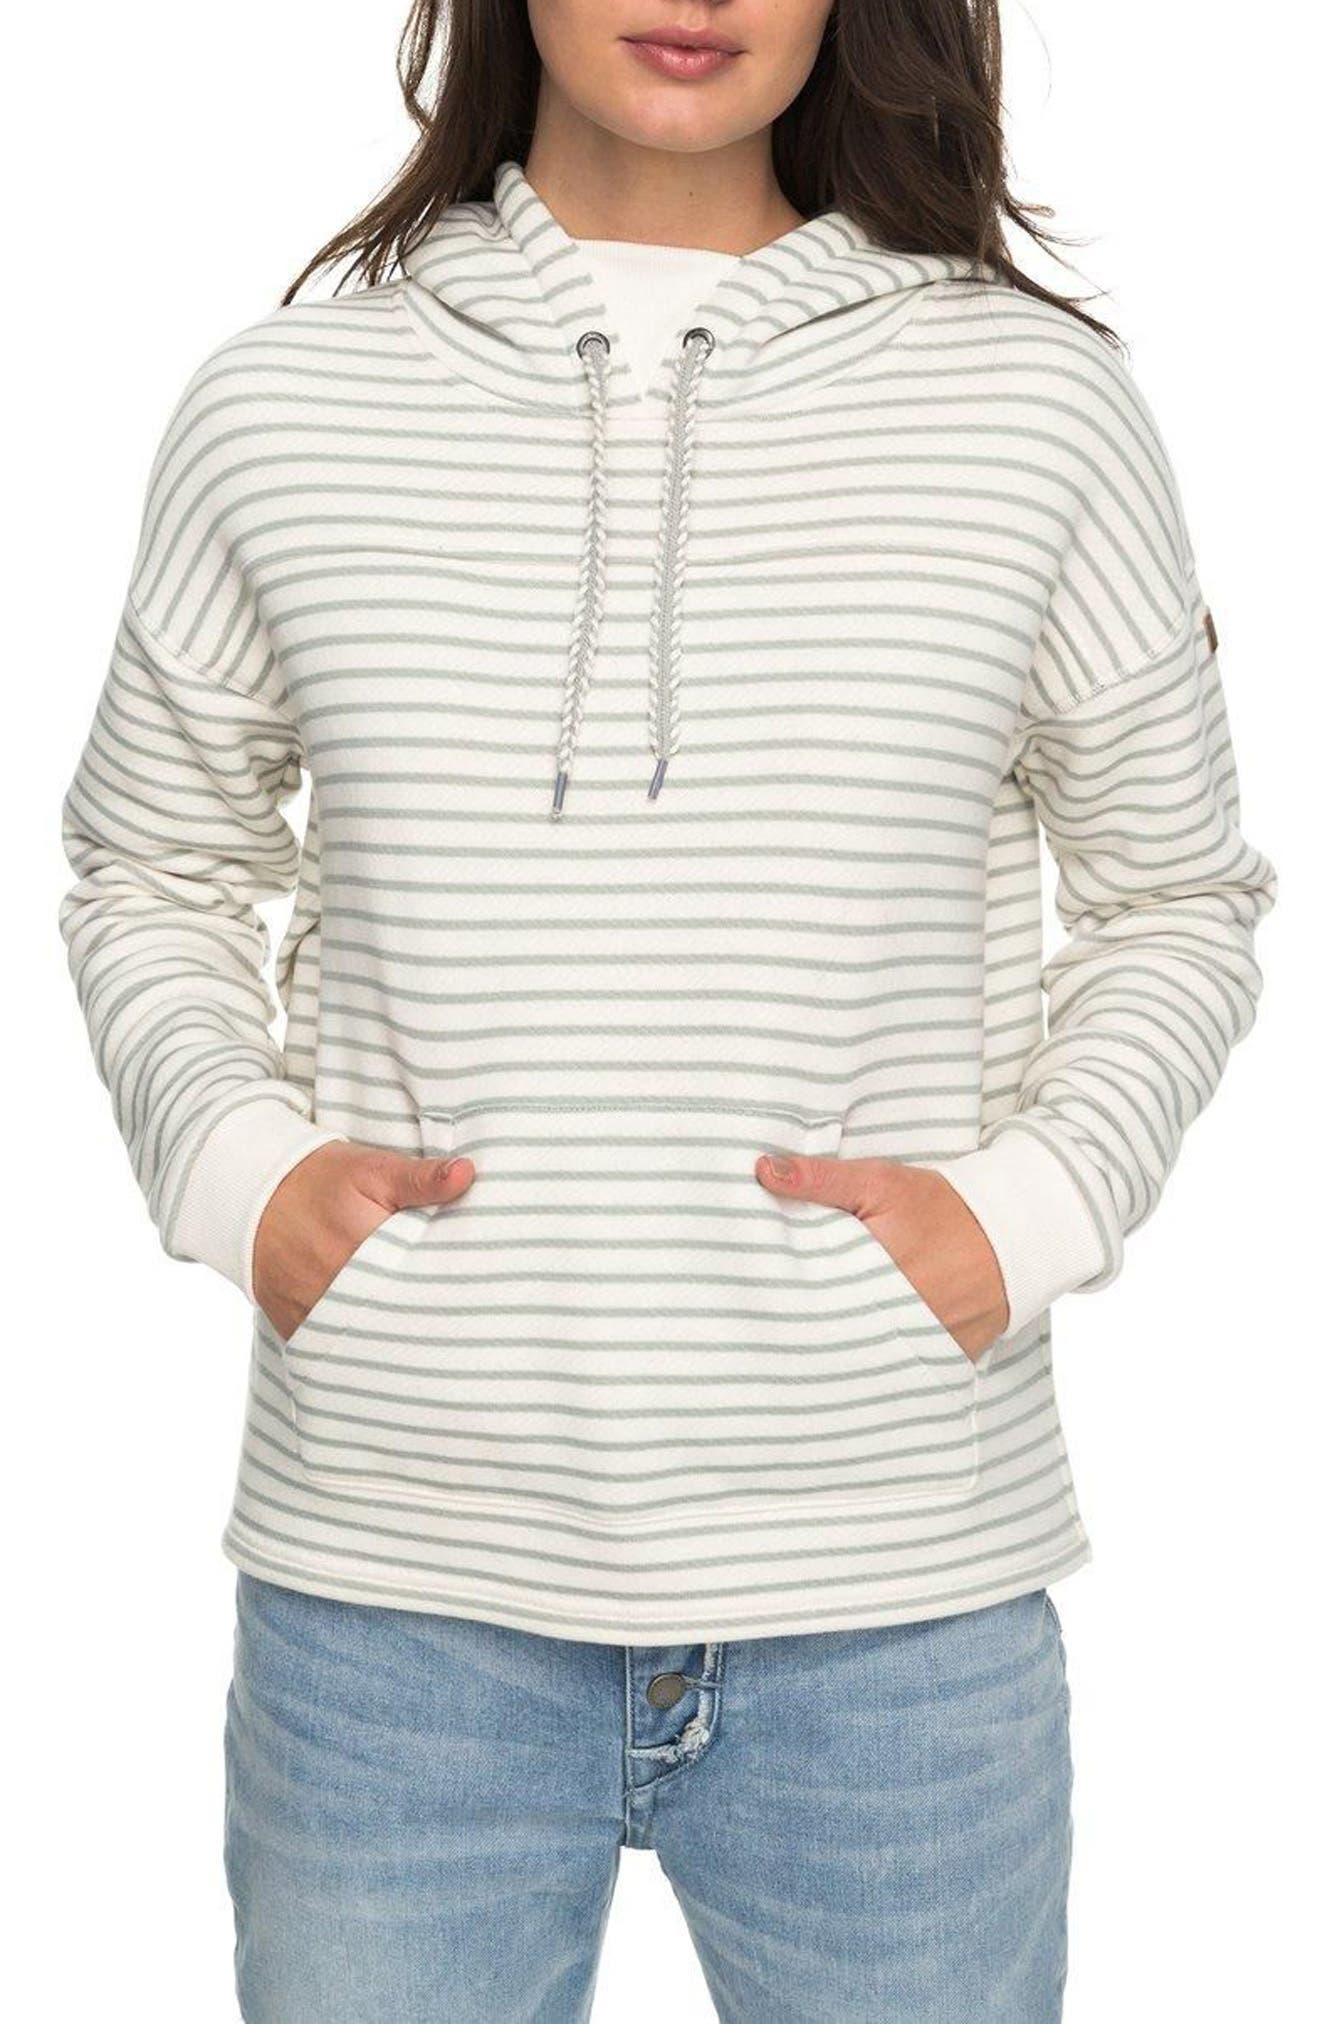 Main Image - Roxy Greatest Glory Stripe Hoodie